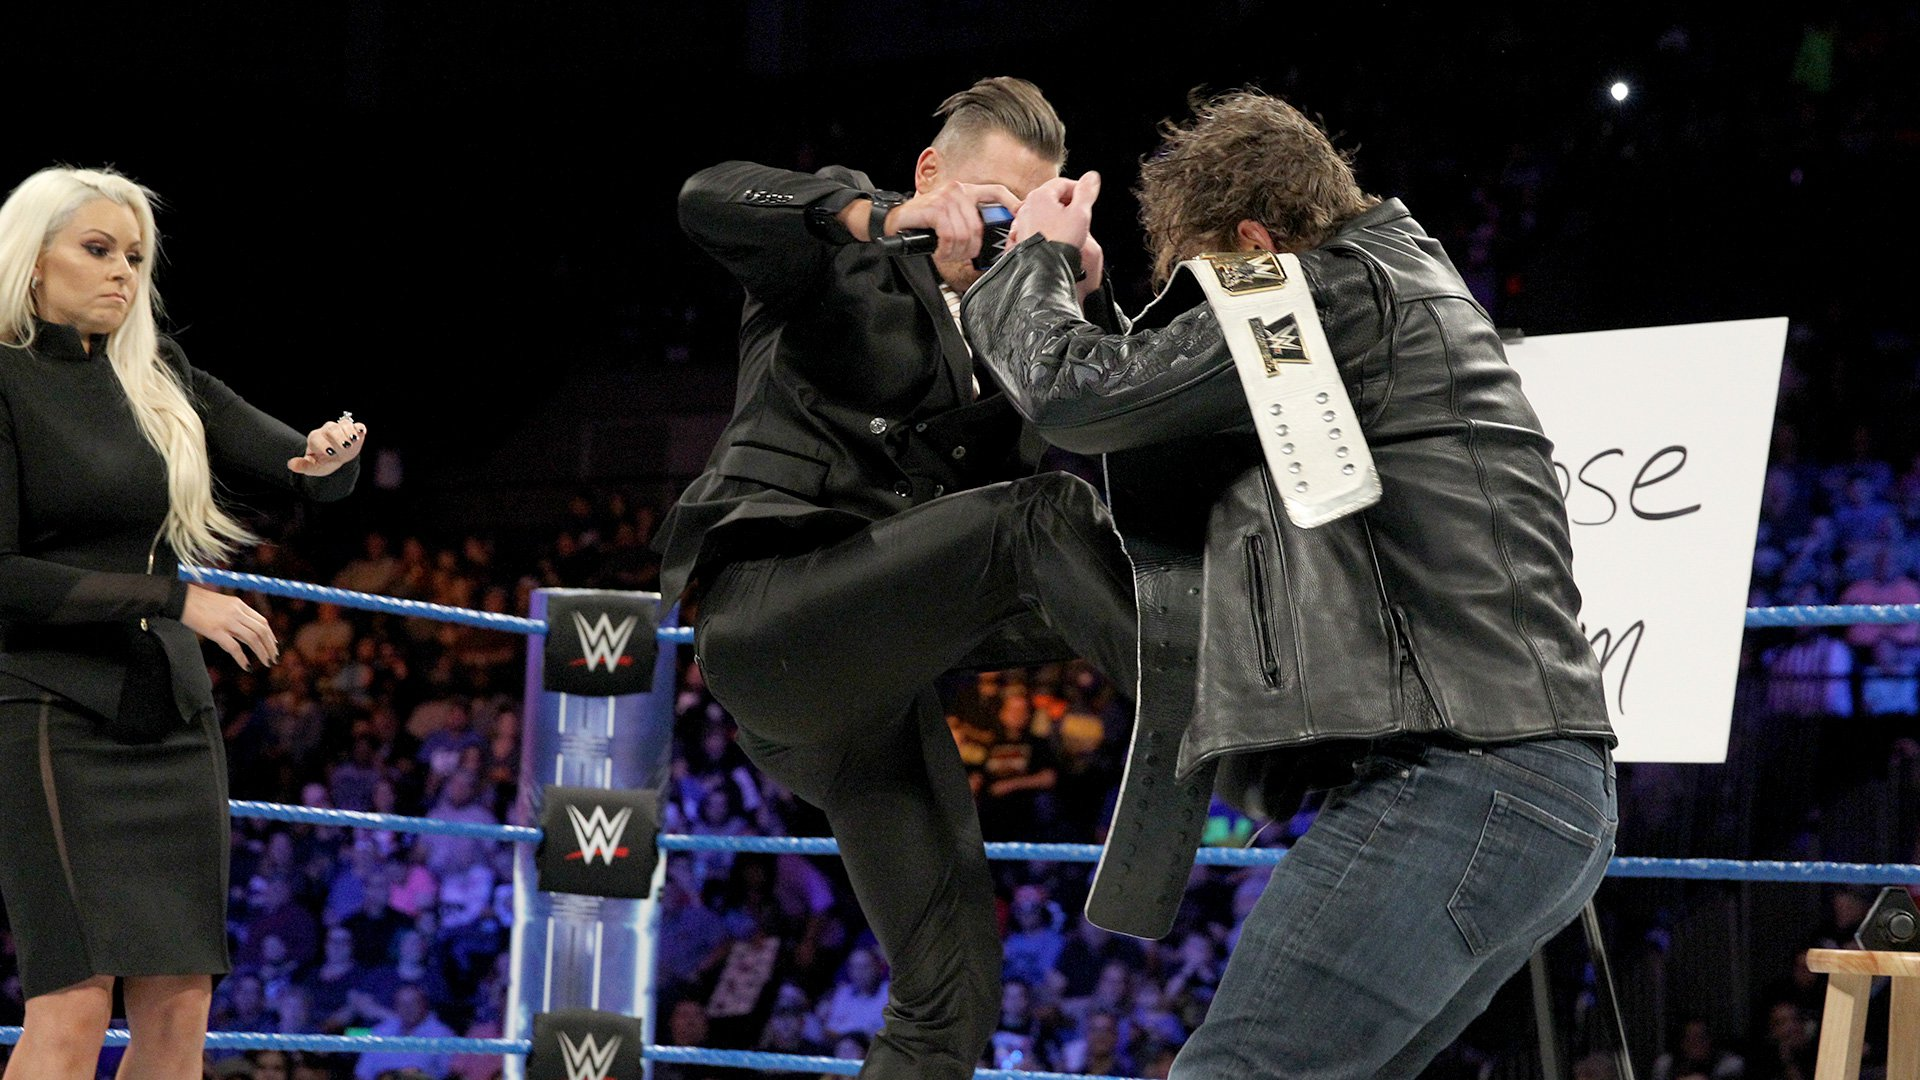 The Miz unleashes an attack on Ambrose.